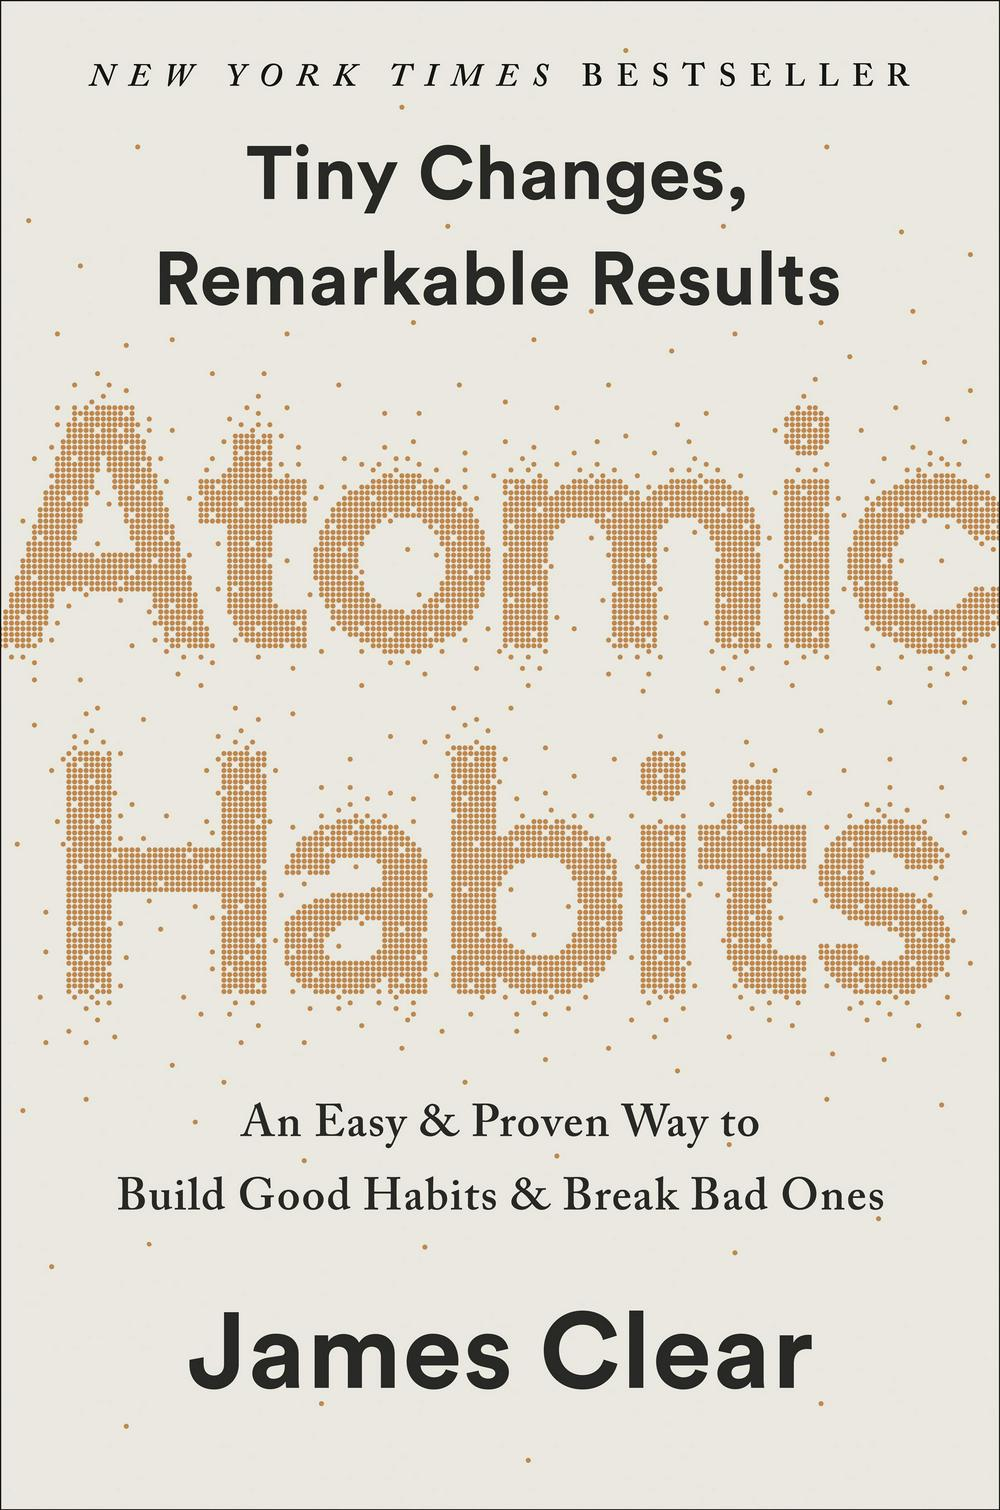 Atomic Habits: Tiny Changes, Remarkable Results: An Easy & Proven Way to Build Good Habits & Break Bad Ones by James Clear, ISBN: 9780735211292